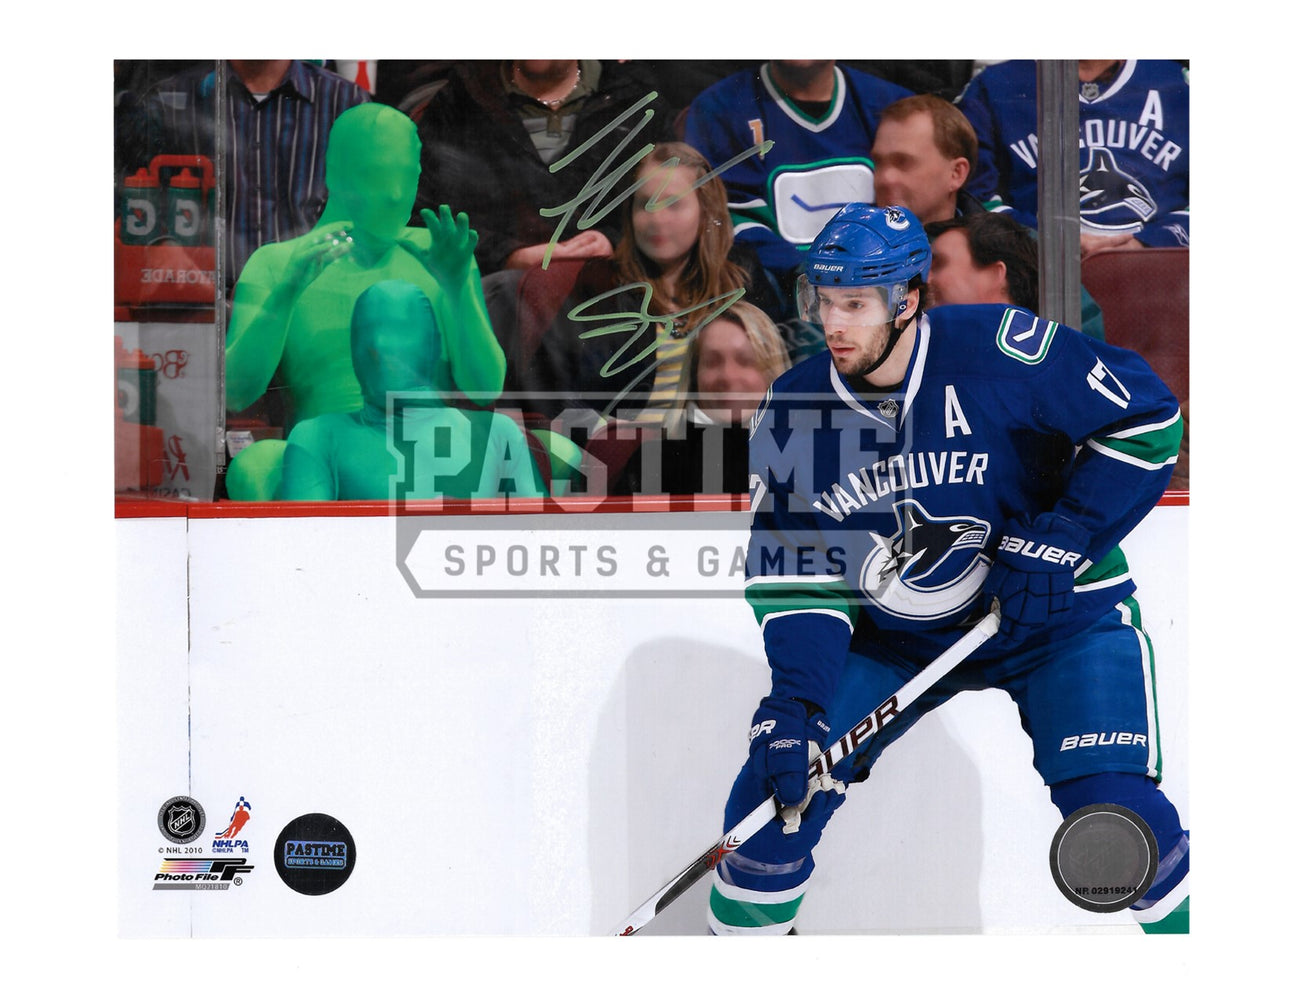 The Green Men Autographed 8X10 (With Ryan Kesler) - Pastime Sports & Games